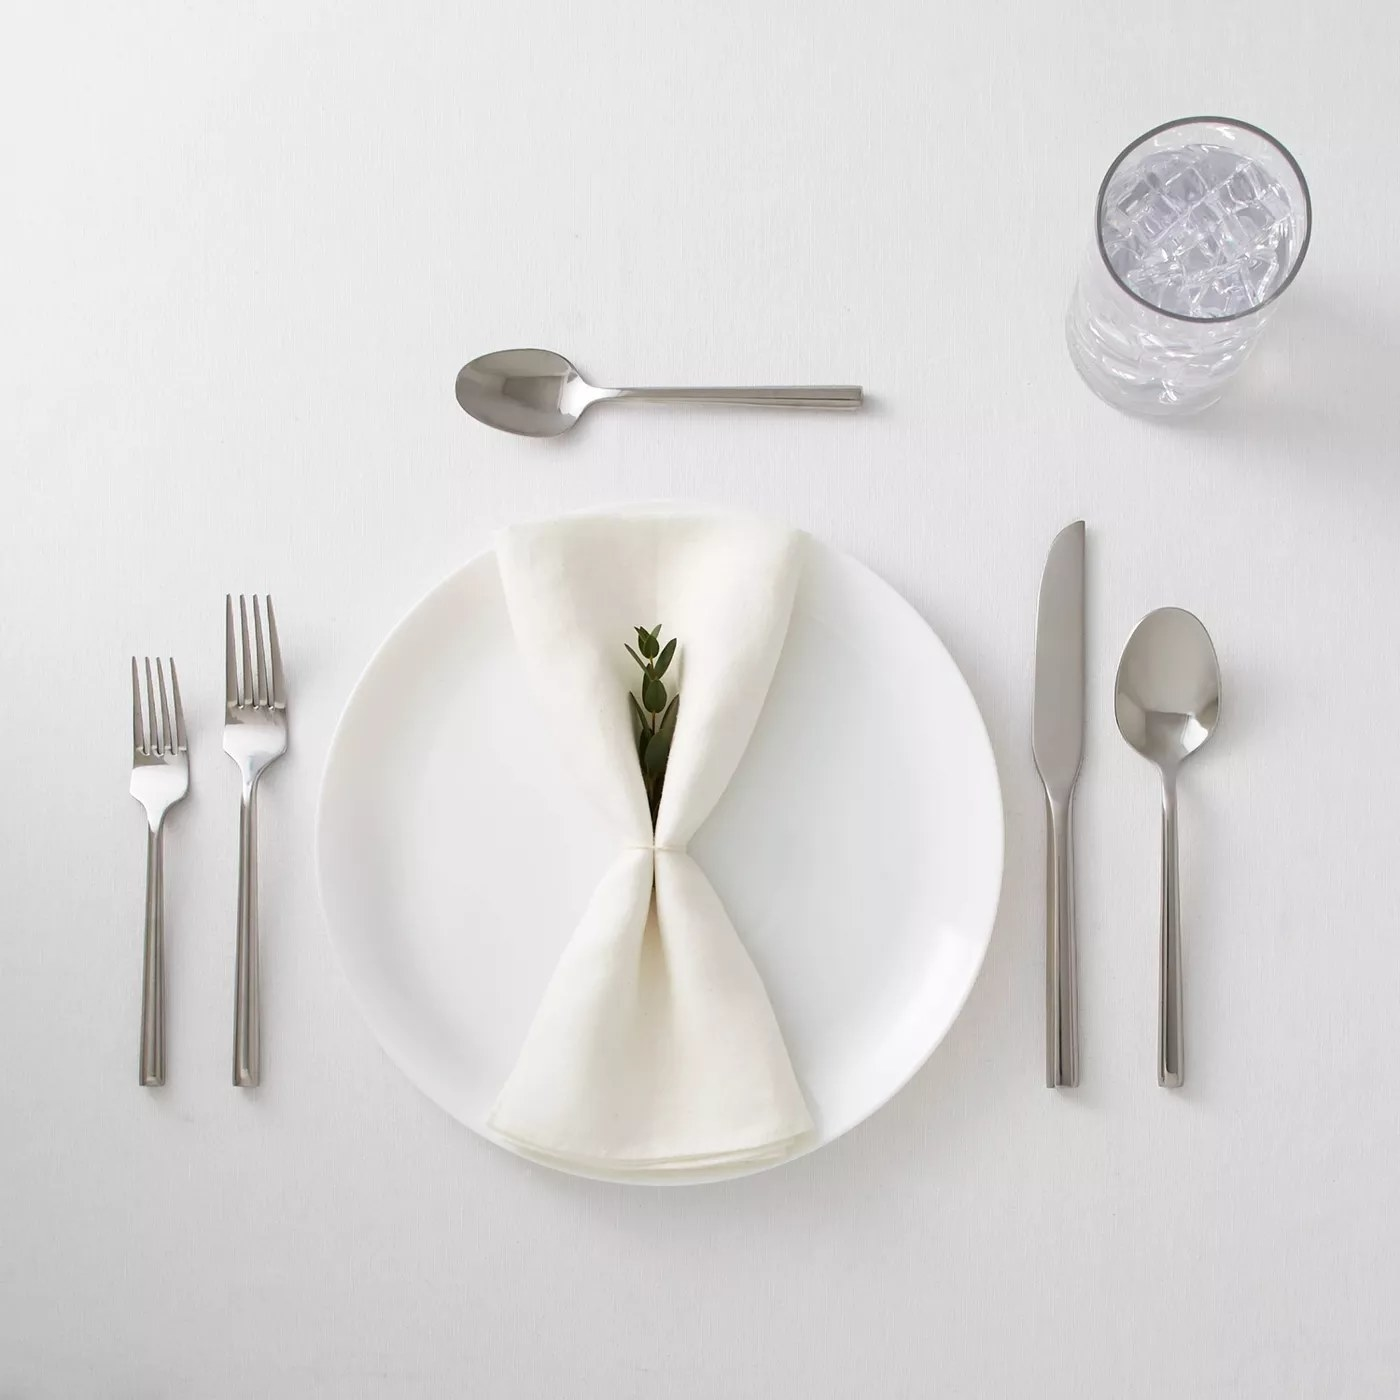 The stainless steel cutlery